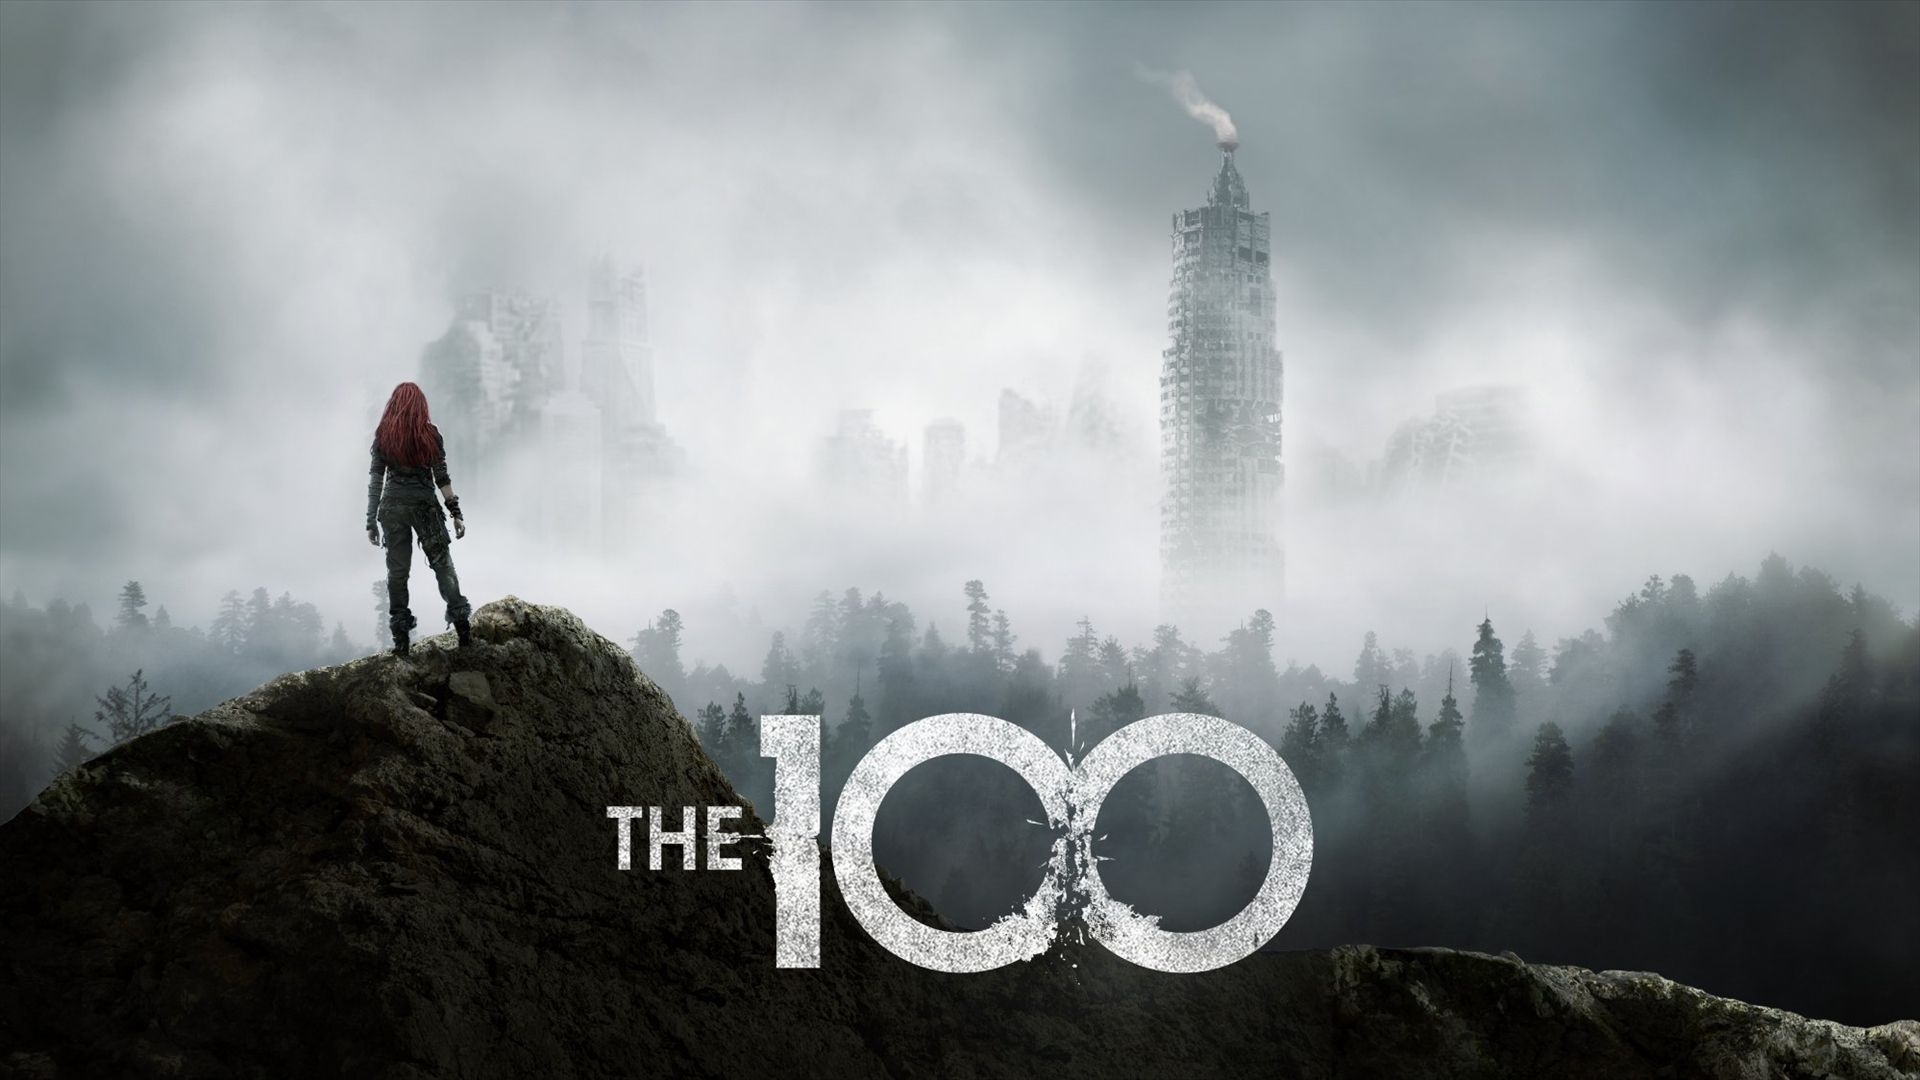 the best wallpaper of the season 3 of the 100 | the 100 | pinterest